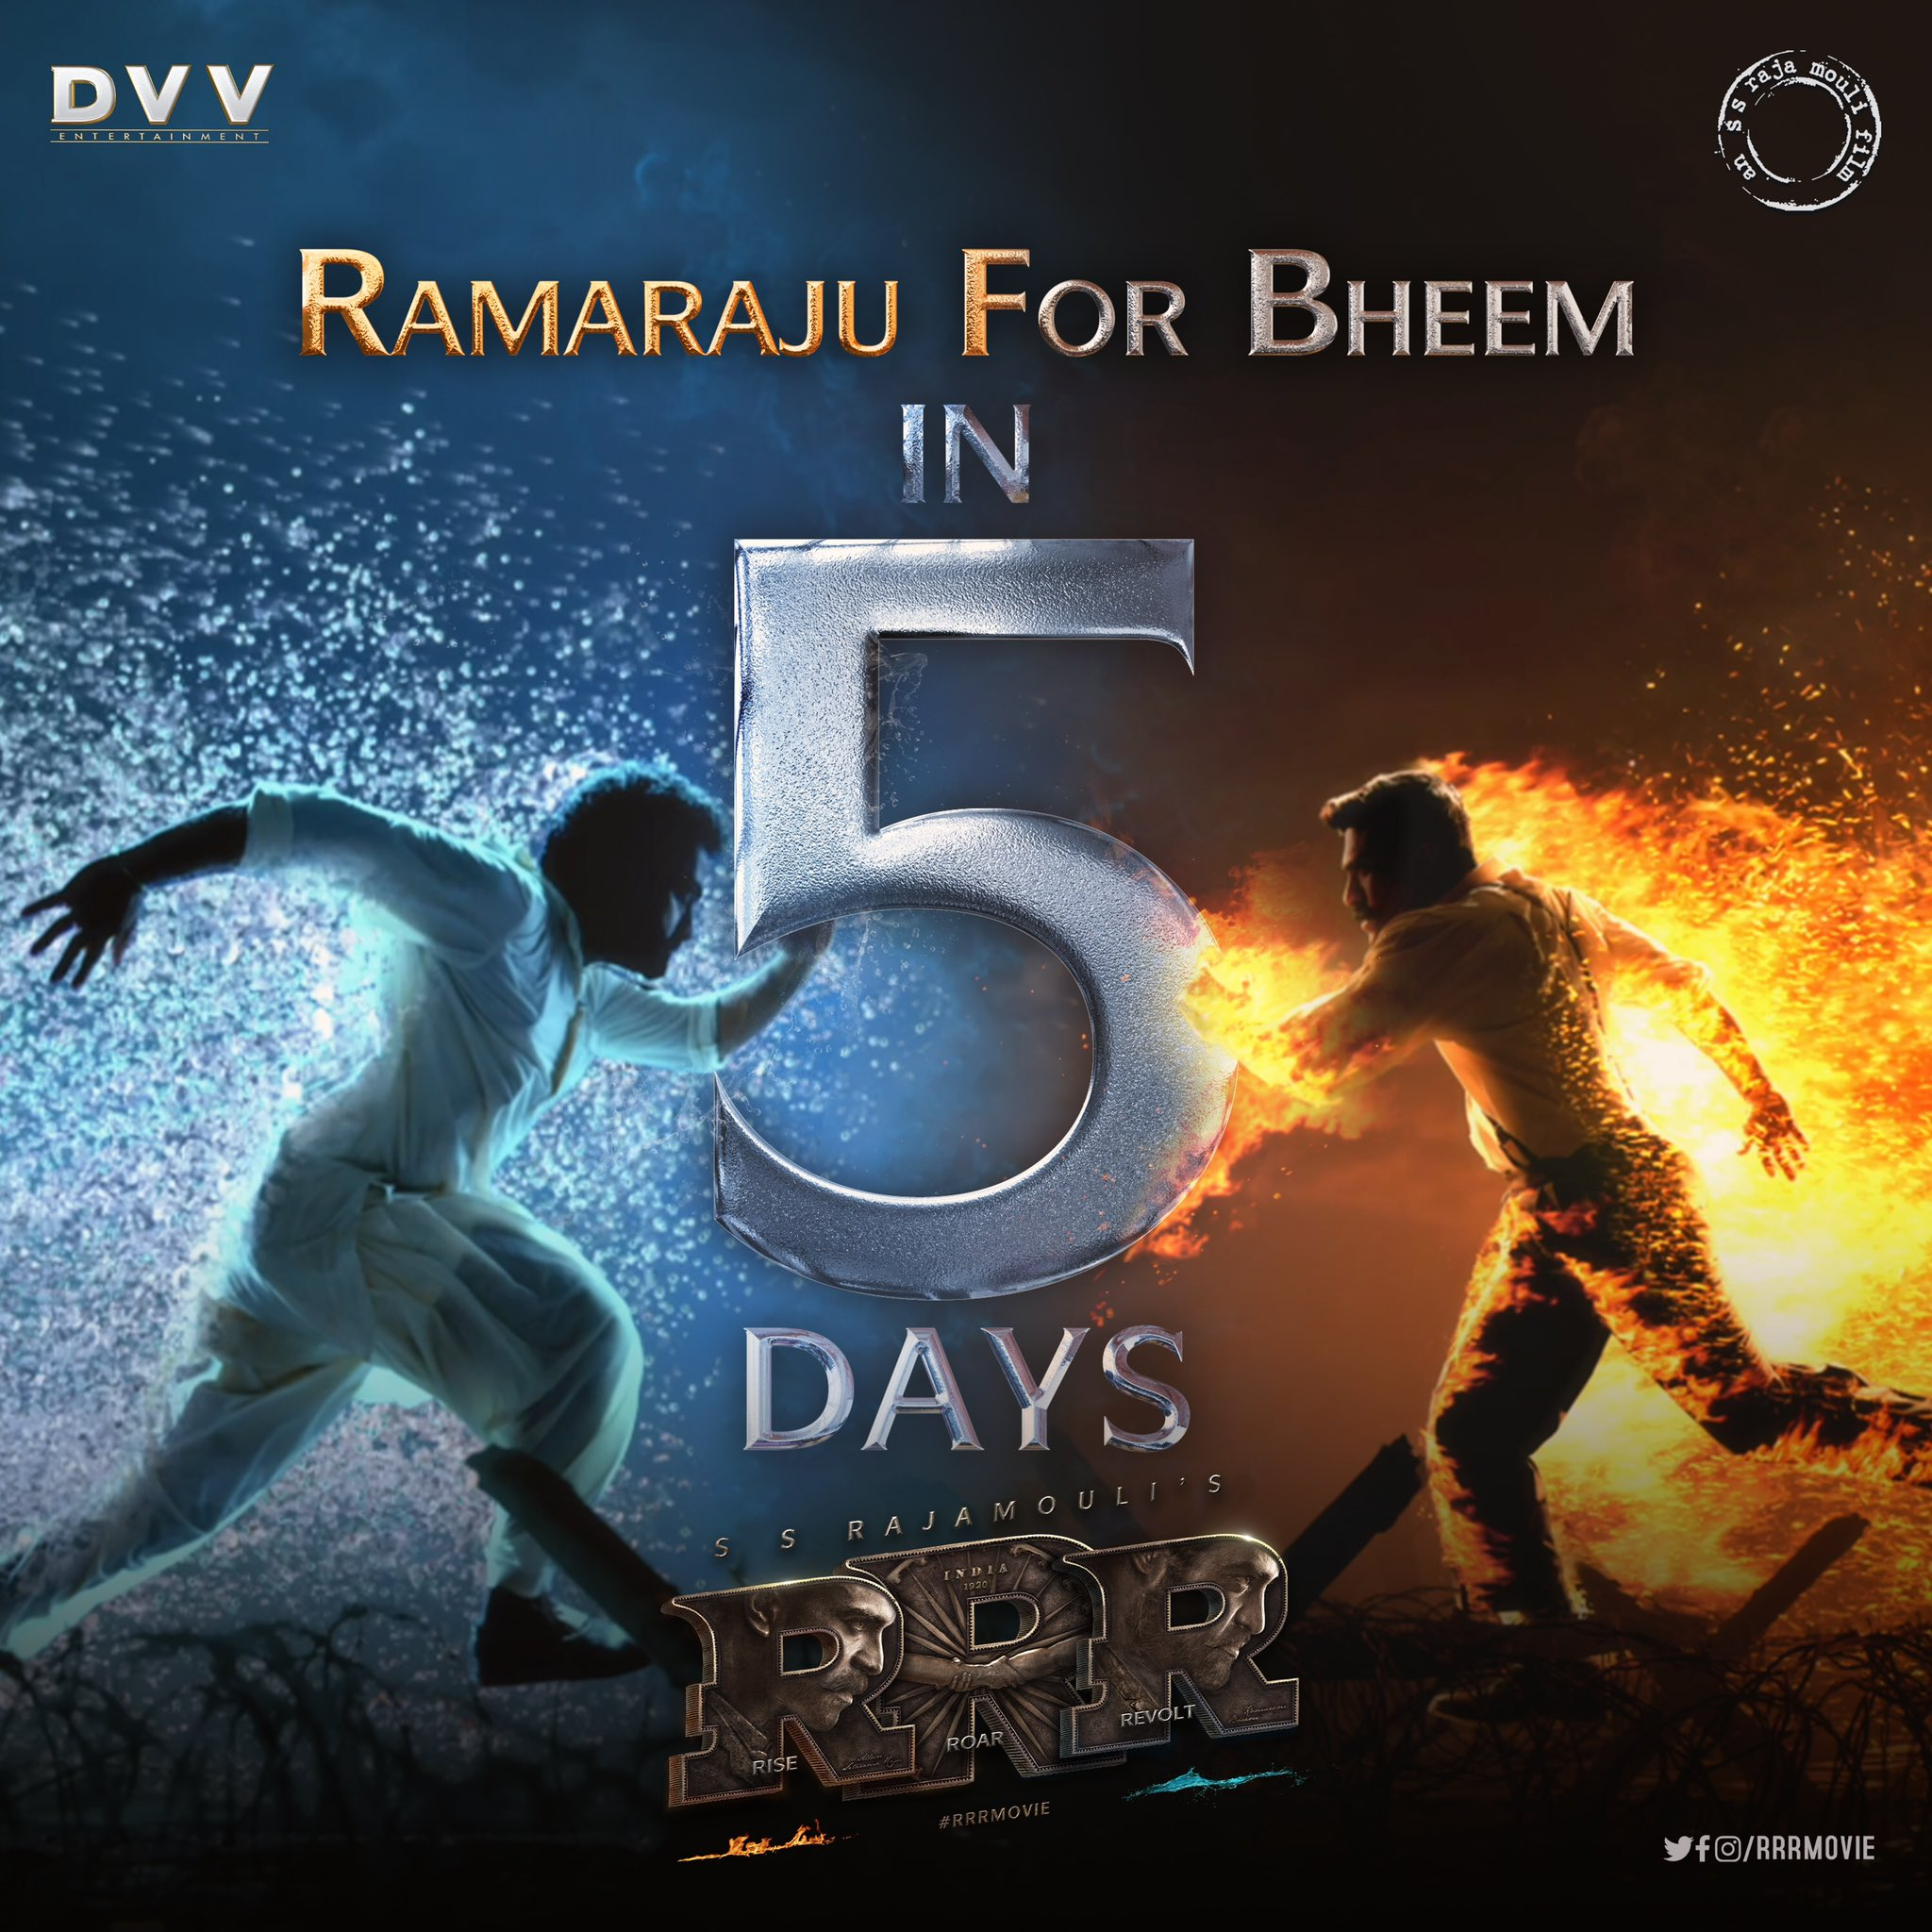 New Poster From RRR Ramaraju For Bheem In 5 Days Go